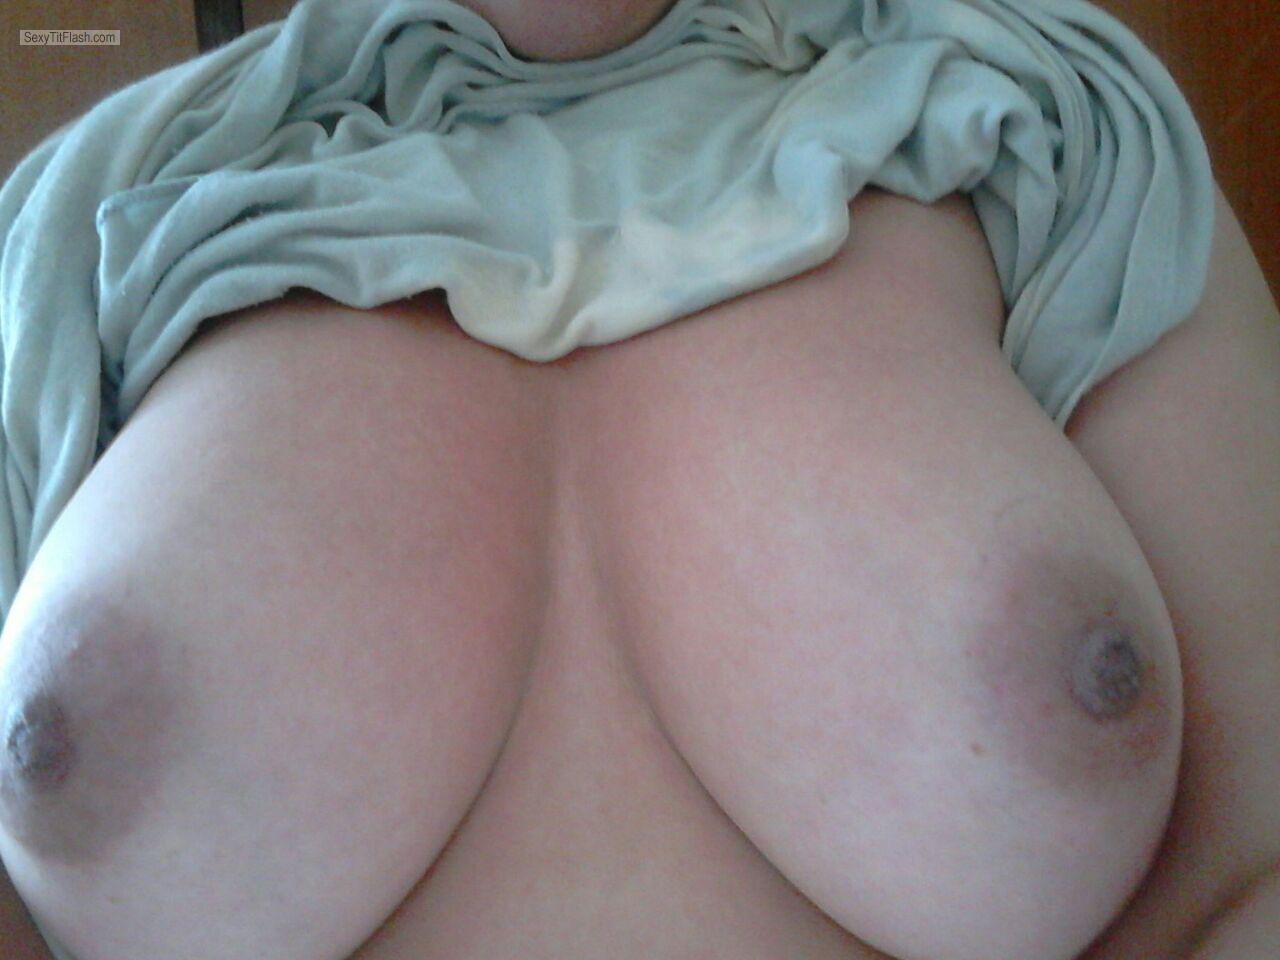 Big Tits Of A Friend Selfie by Wanna